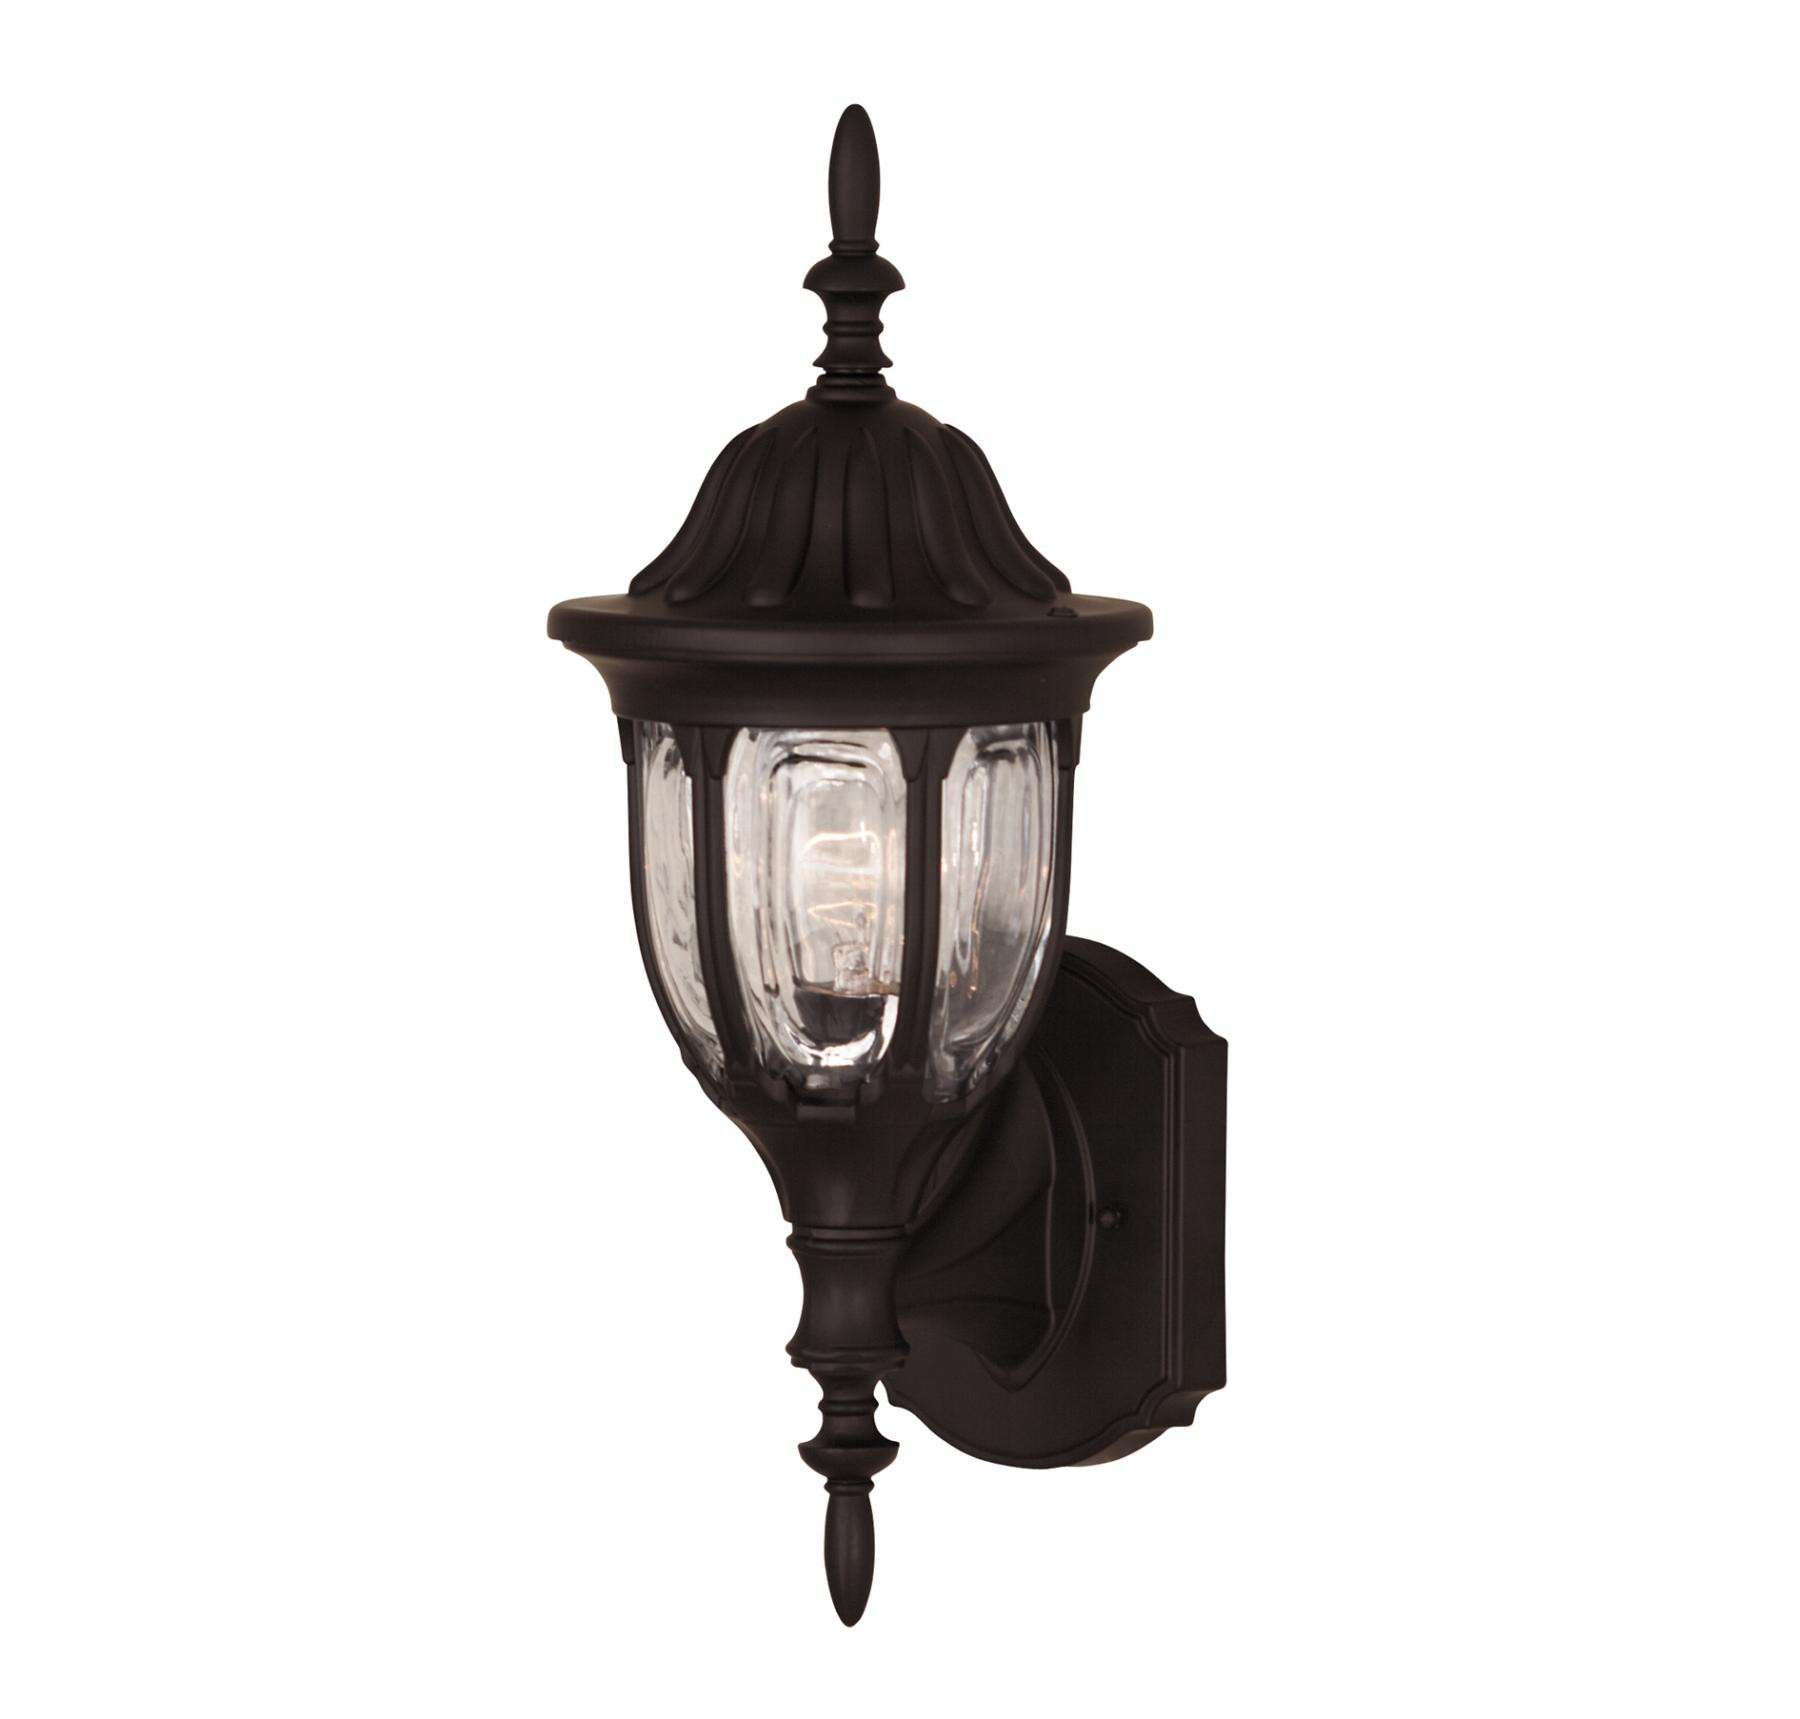 Savoy House 07068-BLK Exterior Collections Wall Mount Lantern in Black Finish with Clear glass